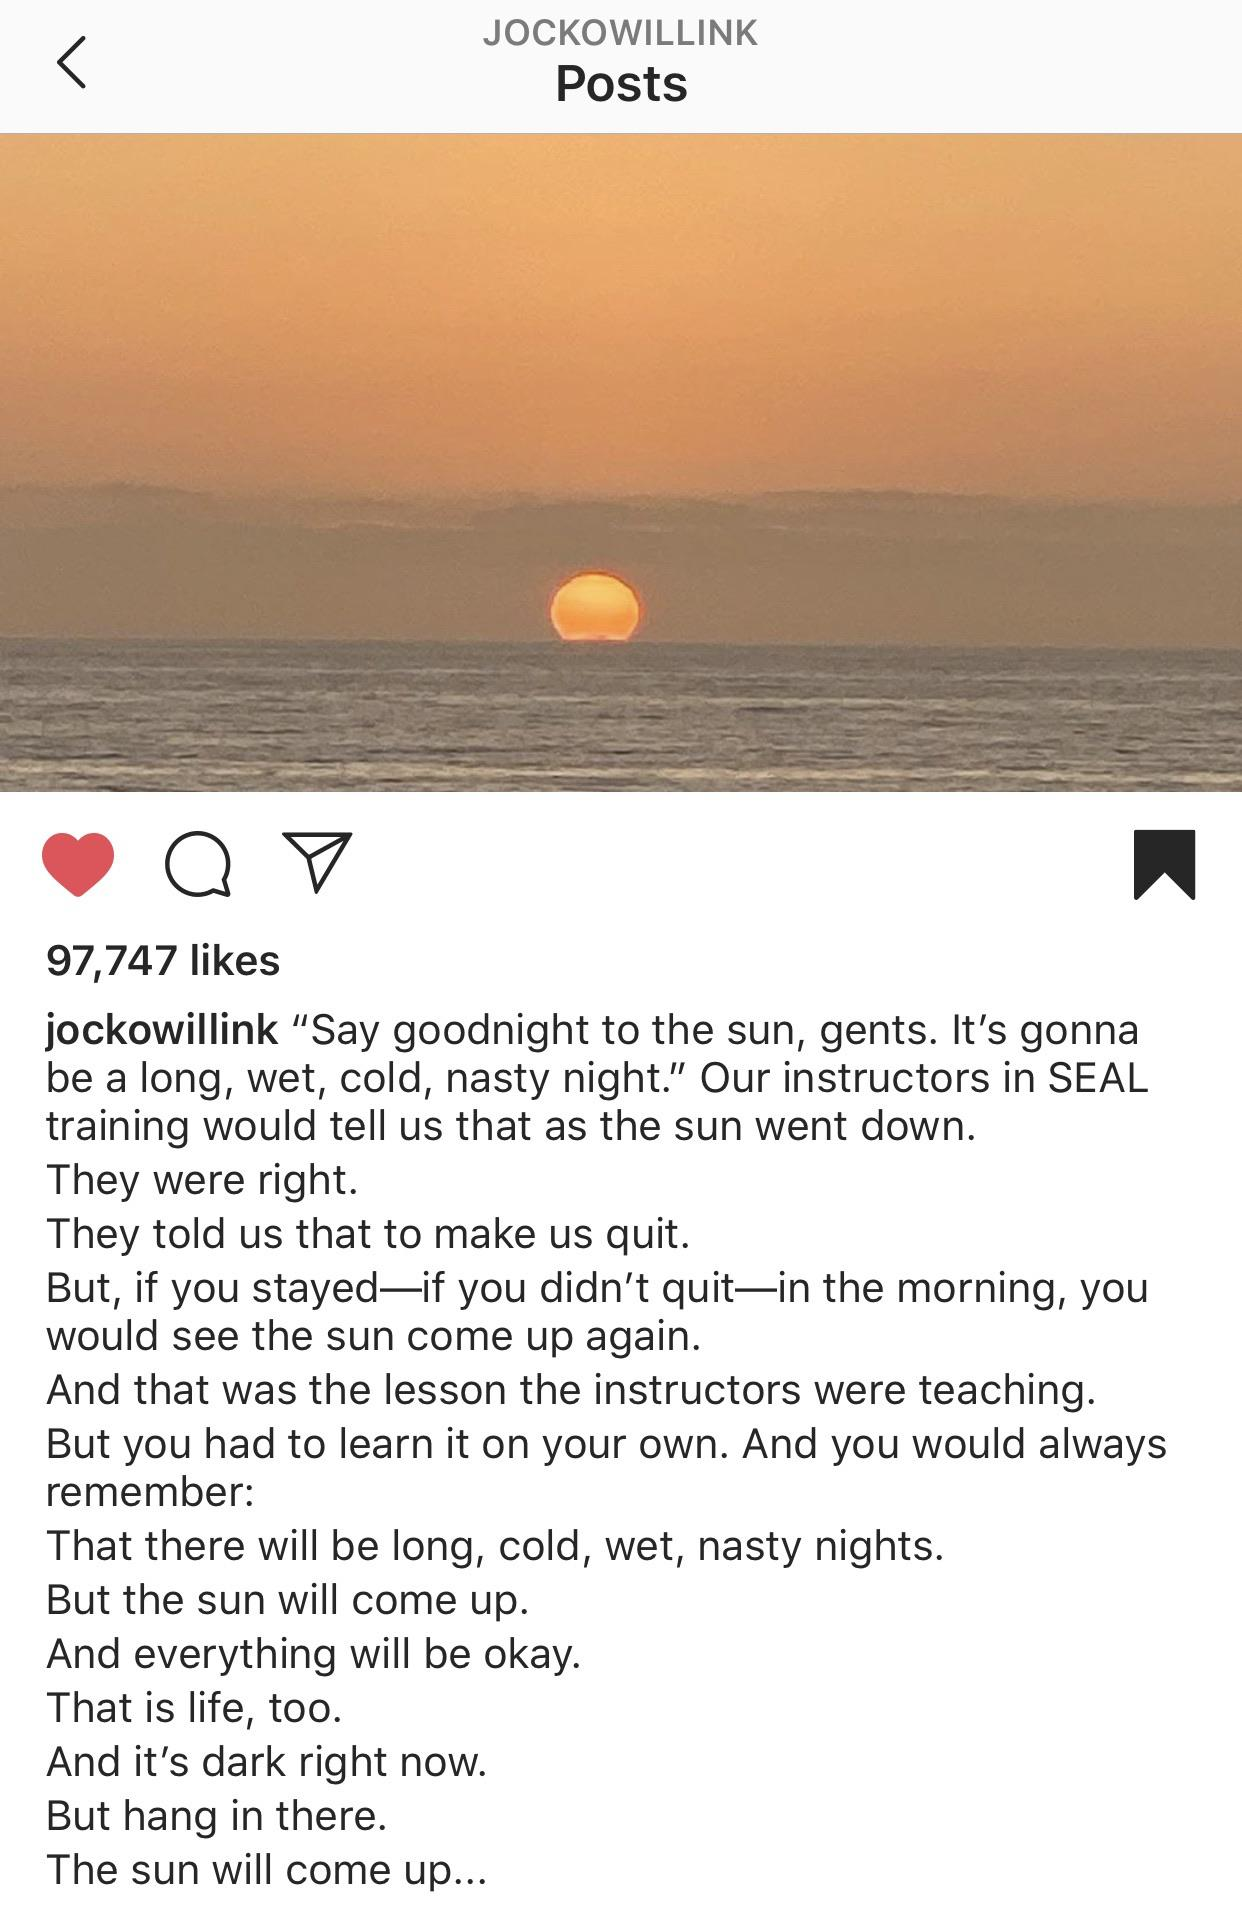 [image] the sun will come up.